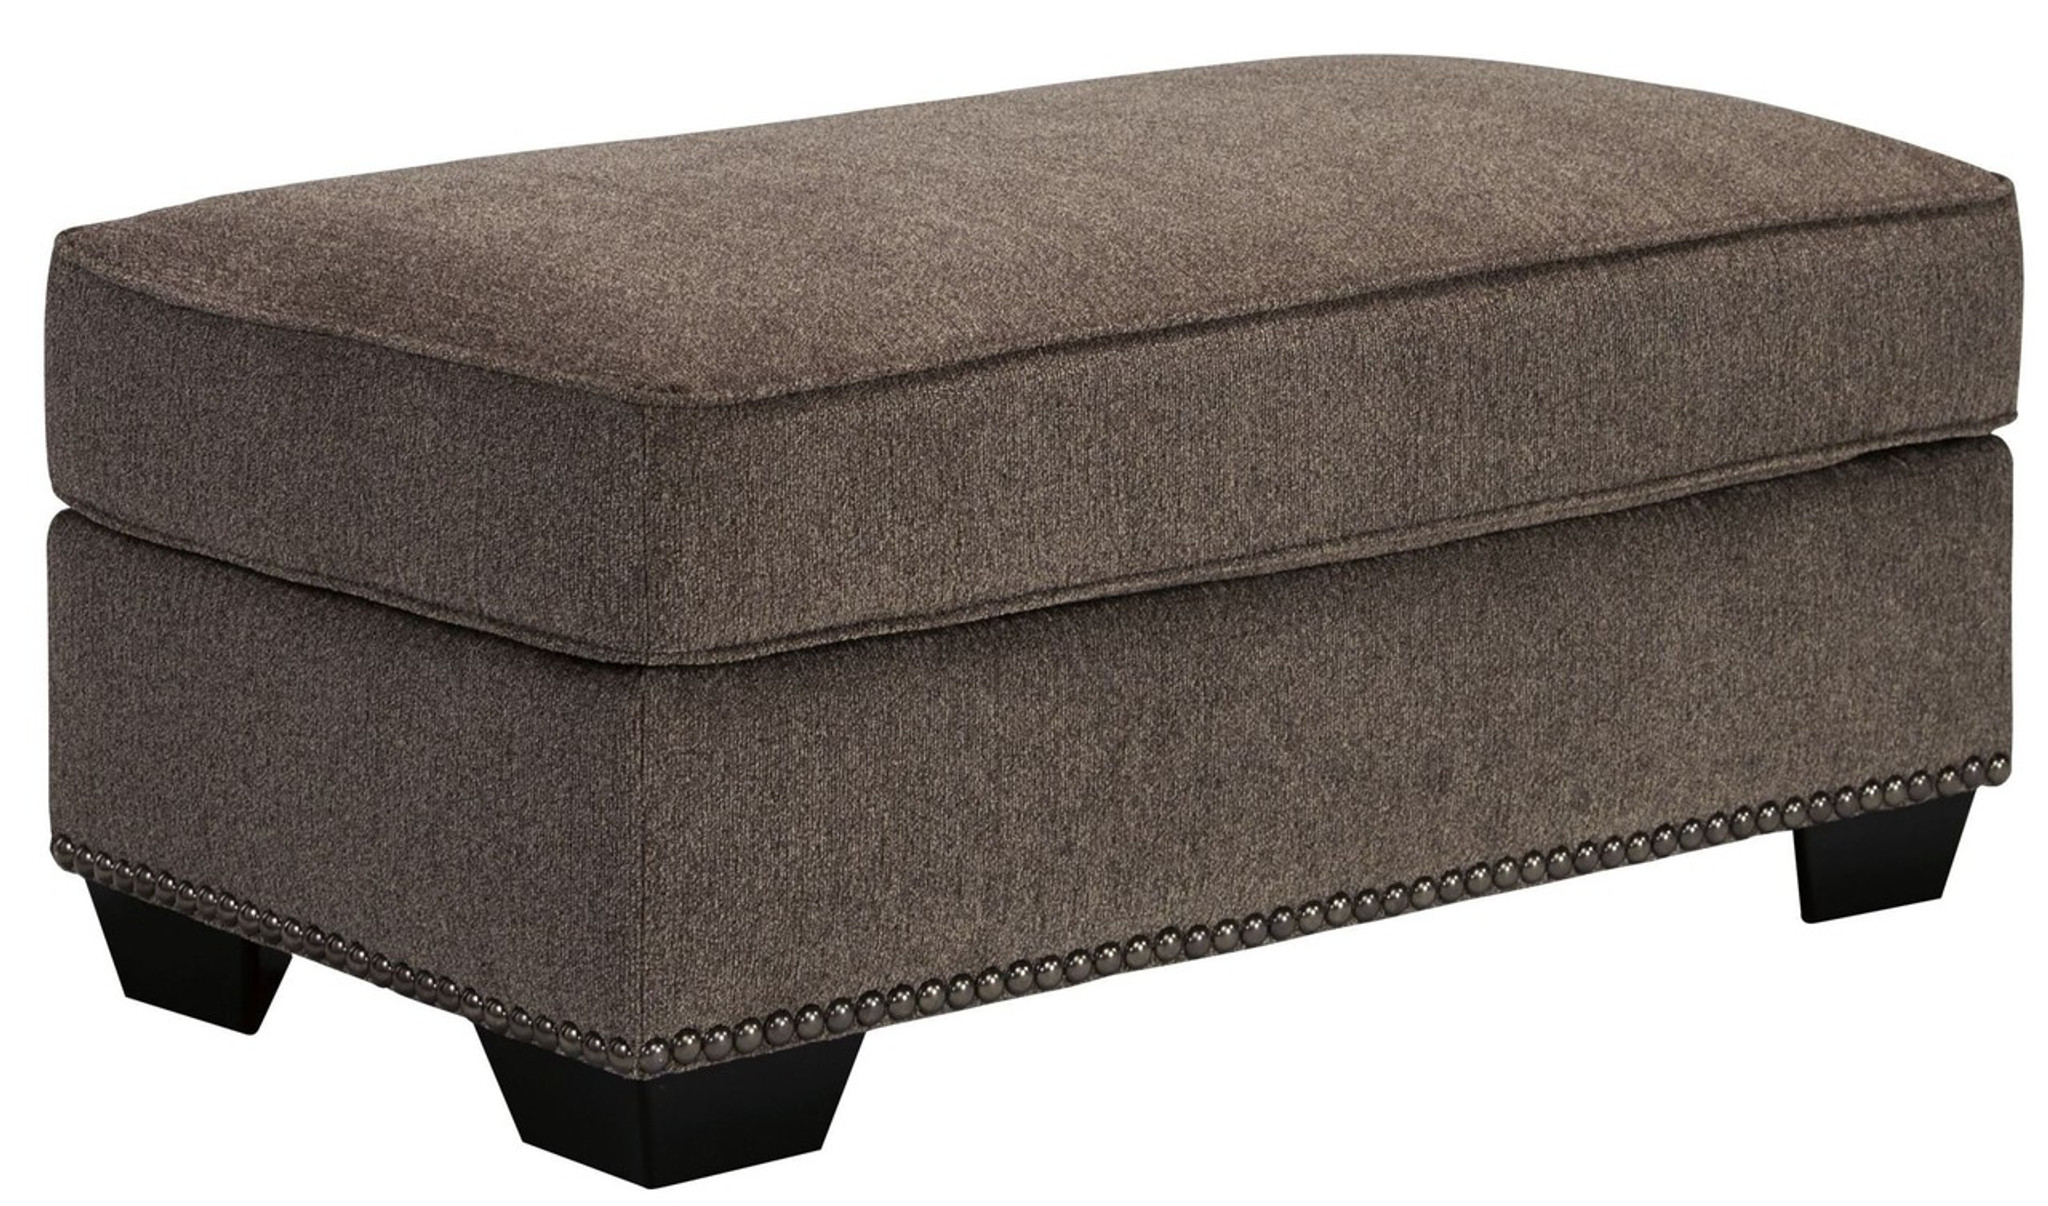 Queen Sofa Bed Ottoman Emelen Alloy Collection Queen Sofa Sleeper